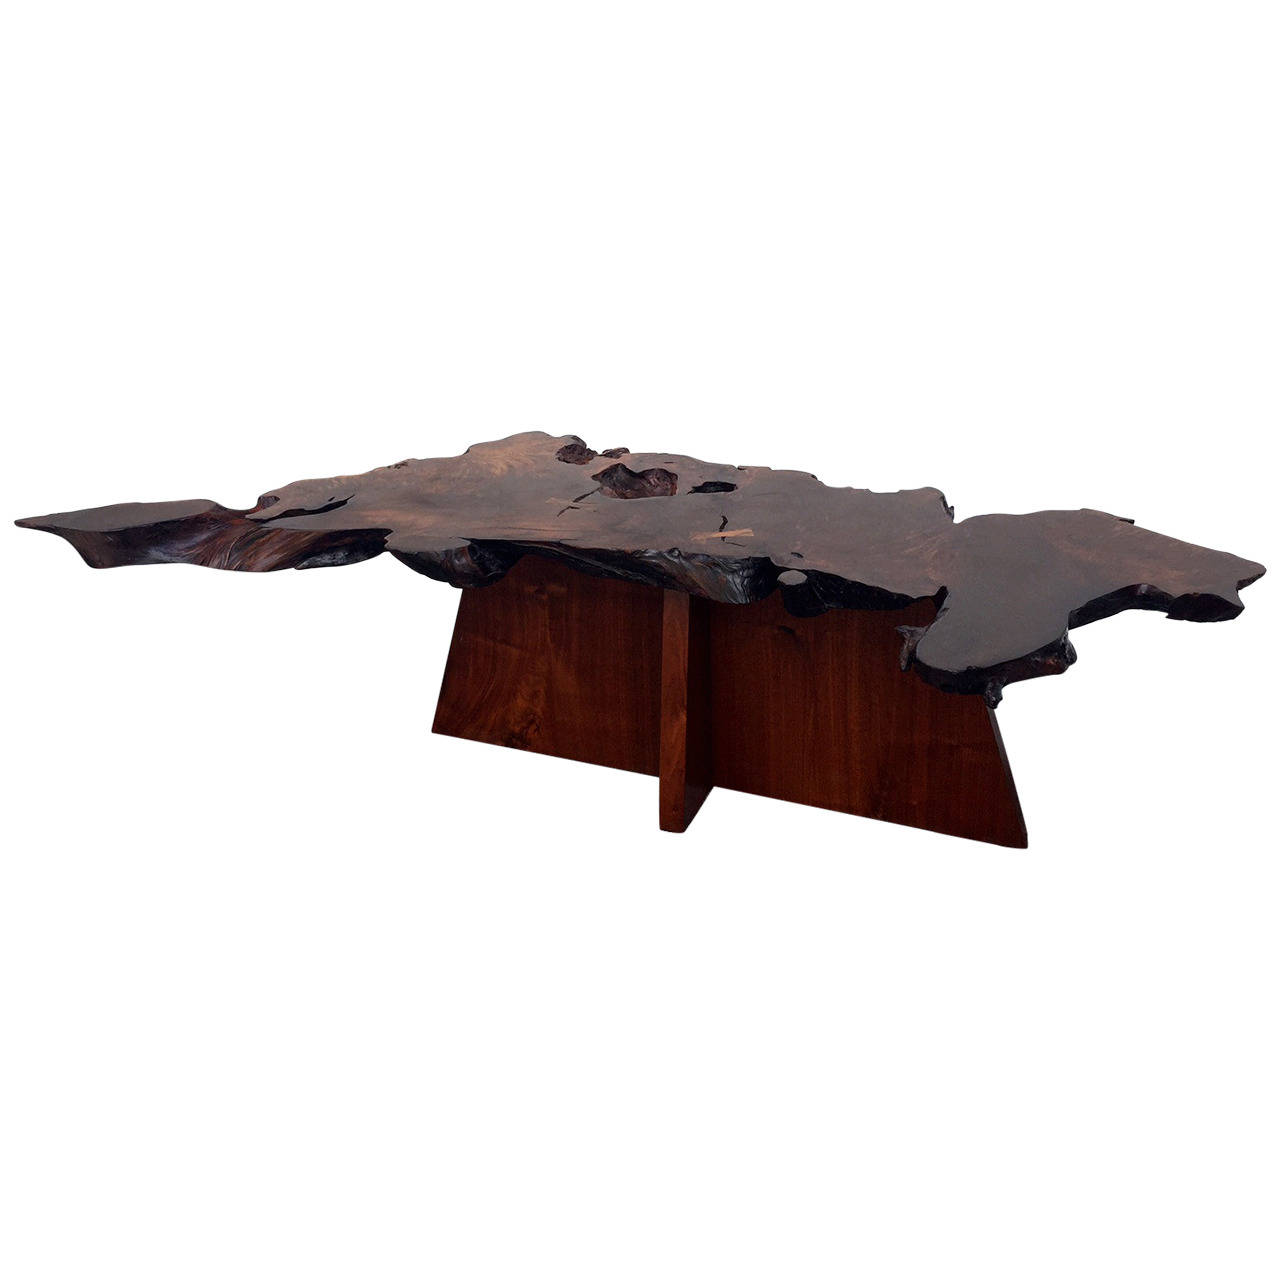 Rare and Exceptional Walnut and Redwood Root Coffee Table by Mira Nakashima